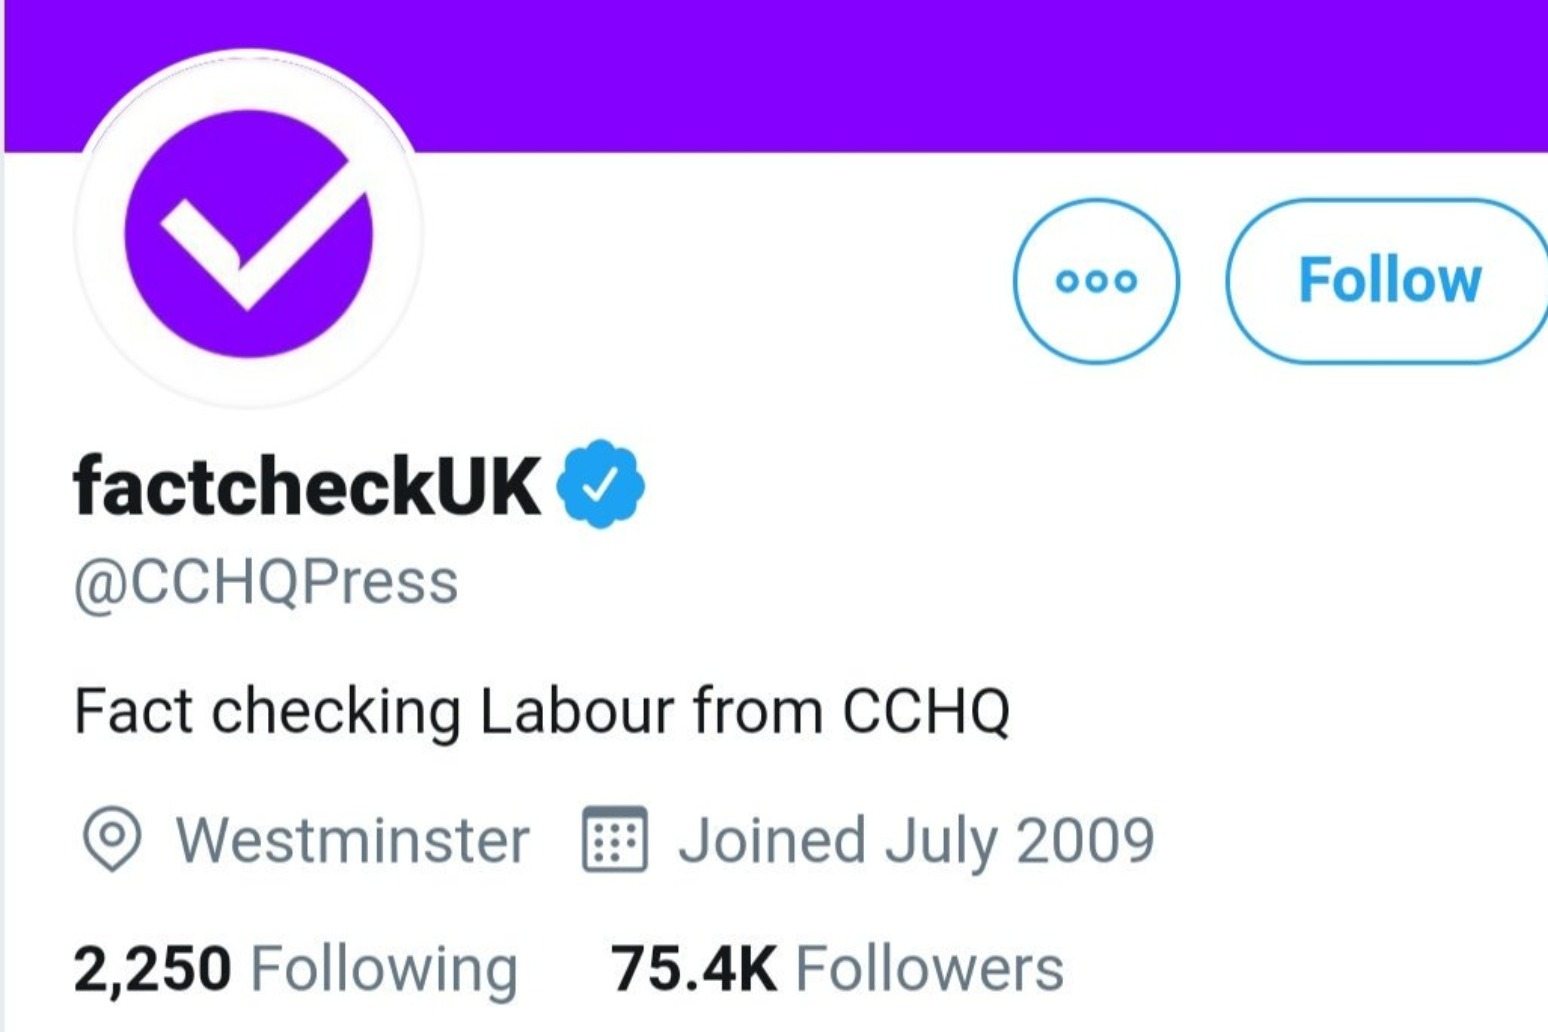 TORIES CRITICISED AFTER REBRANDING PARTY TWITTER ACCOUNT ASFACTCHECKUK